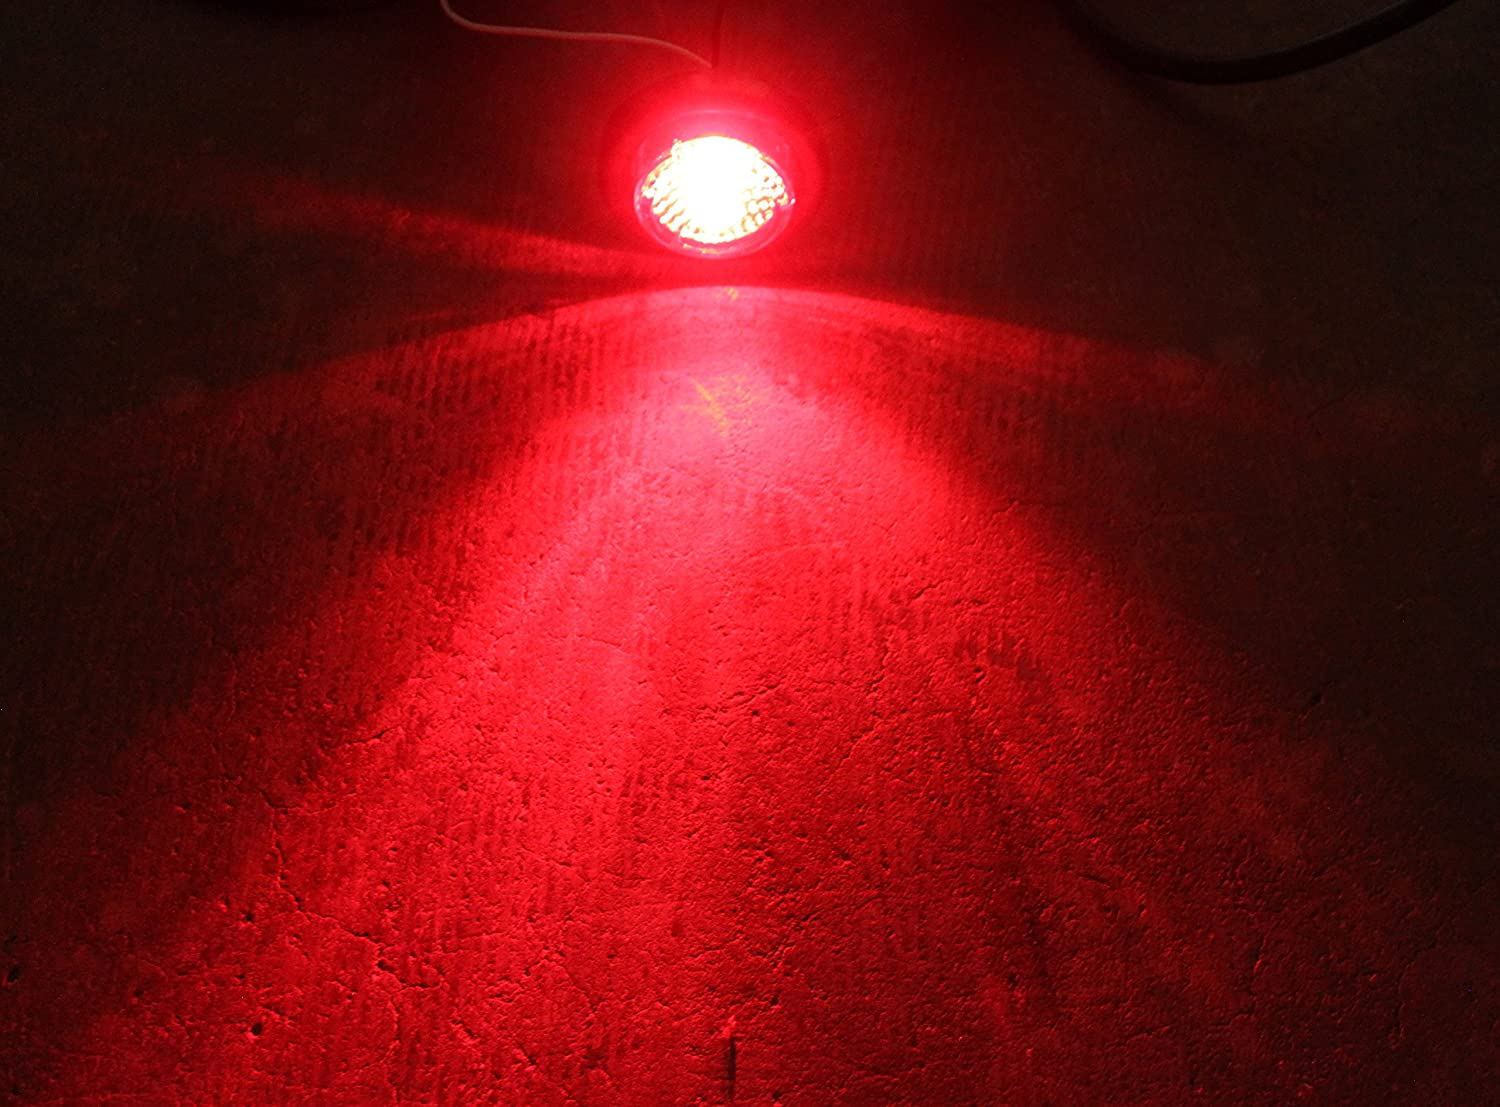 8 RED 8 AMBER LED 2 Round Clearance//Side Marker Light Kits with Light and Grommet Truck Trailer RV 15103 Set of 16